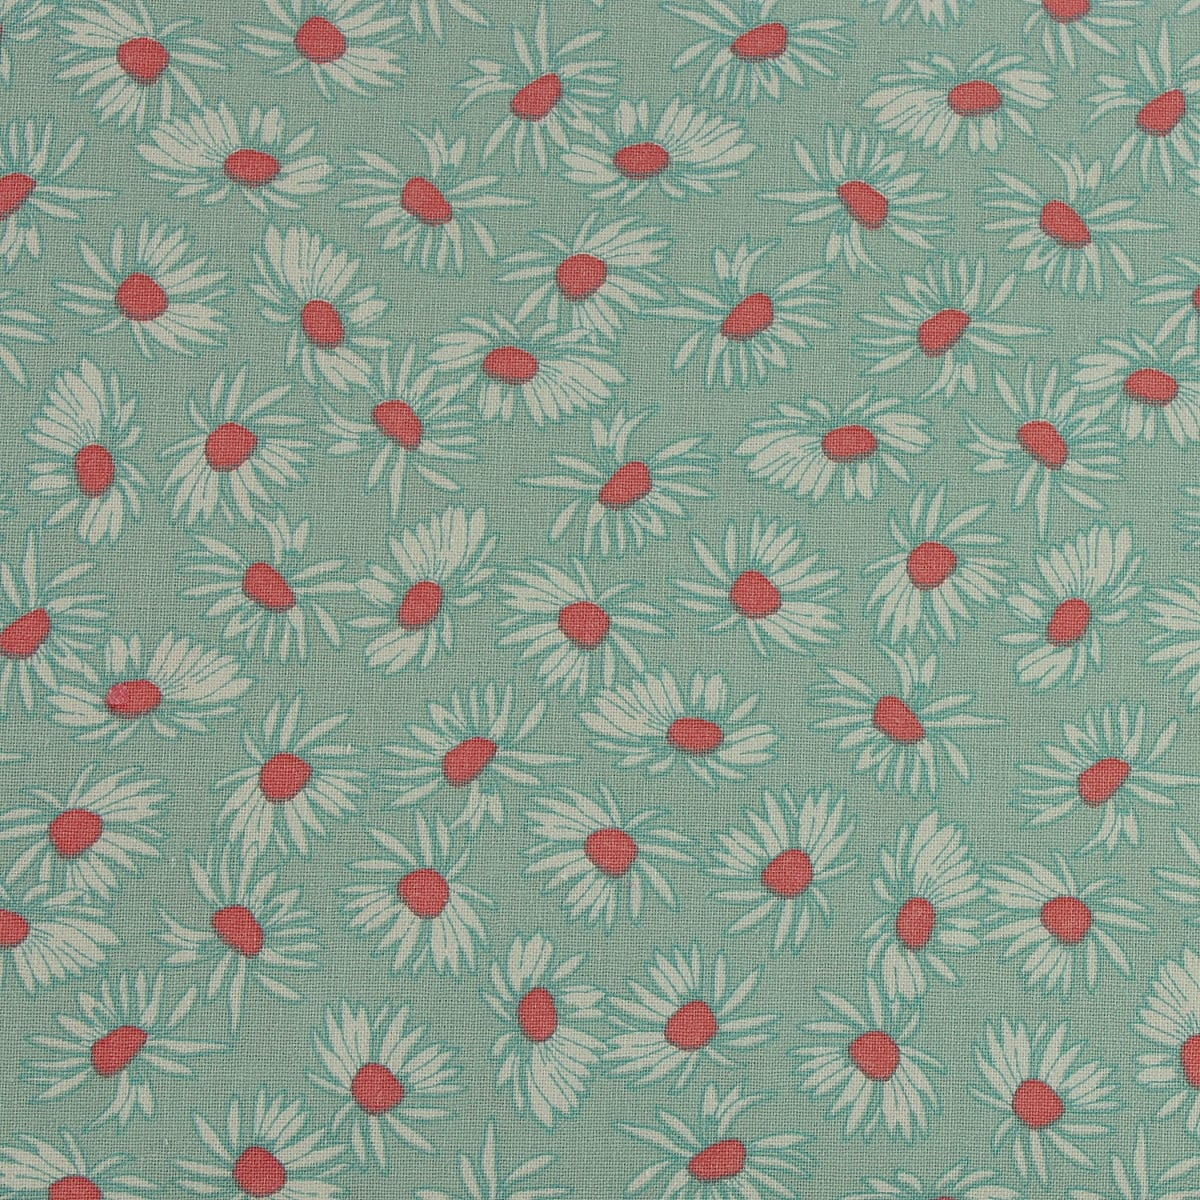 Craft Material Metre Mint Green Fern Floral Print Fabric 100/% Cotton Fabric